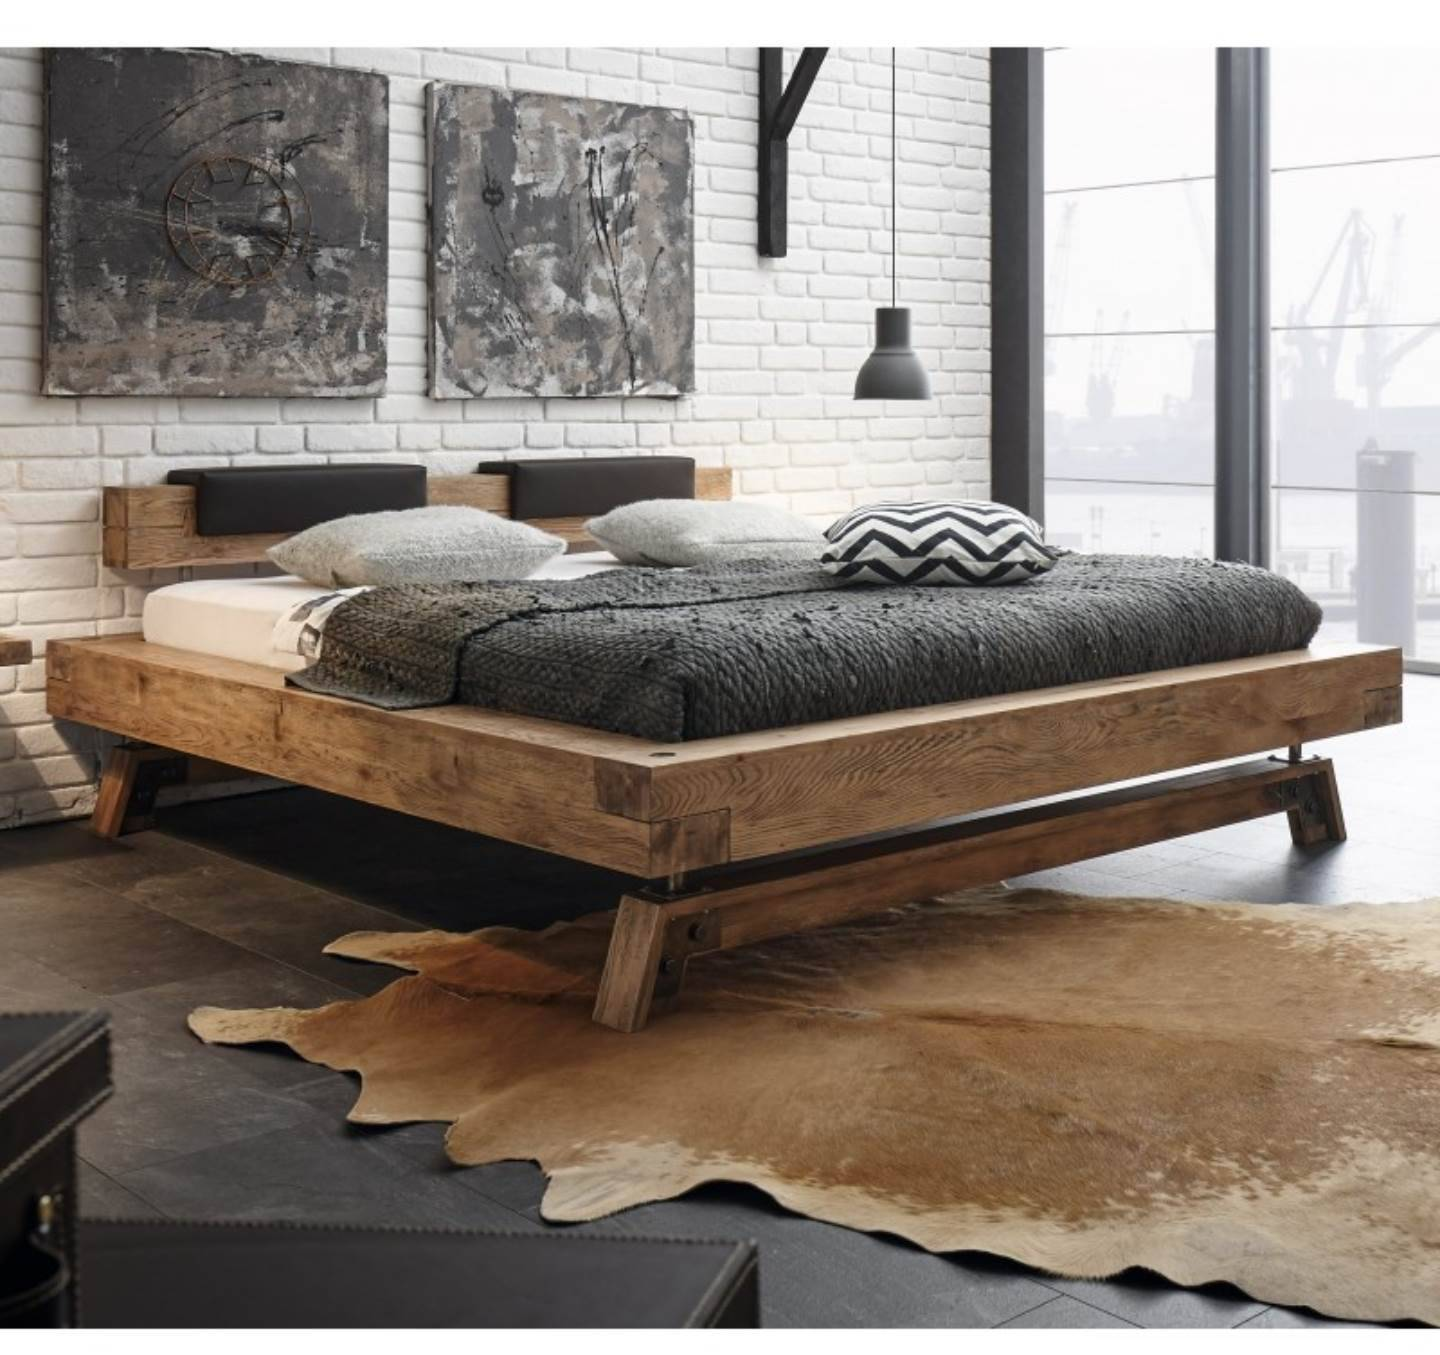 lit complet avec matelas latex 30 lits matelas. Black Bedroom Furniture Sets. Home Design Ideas